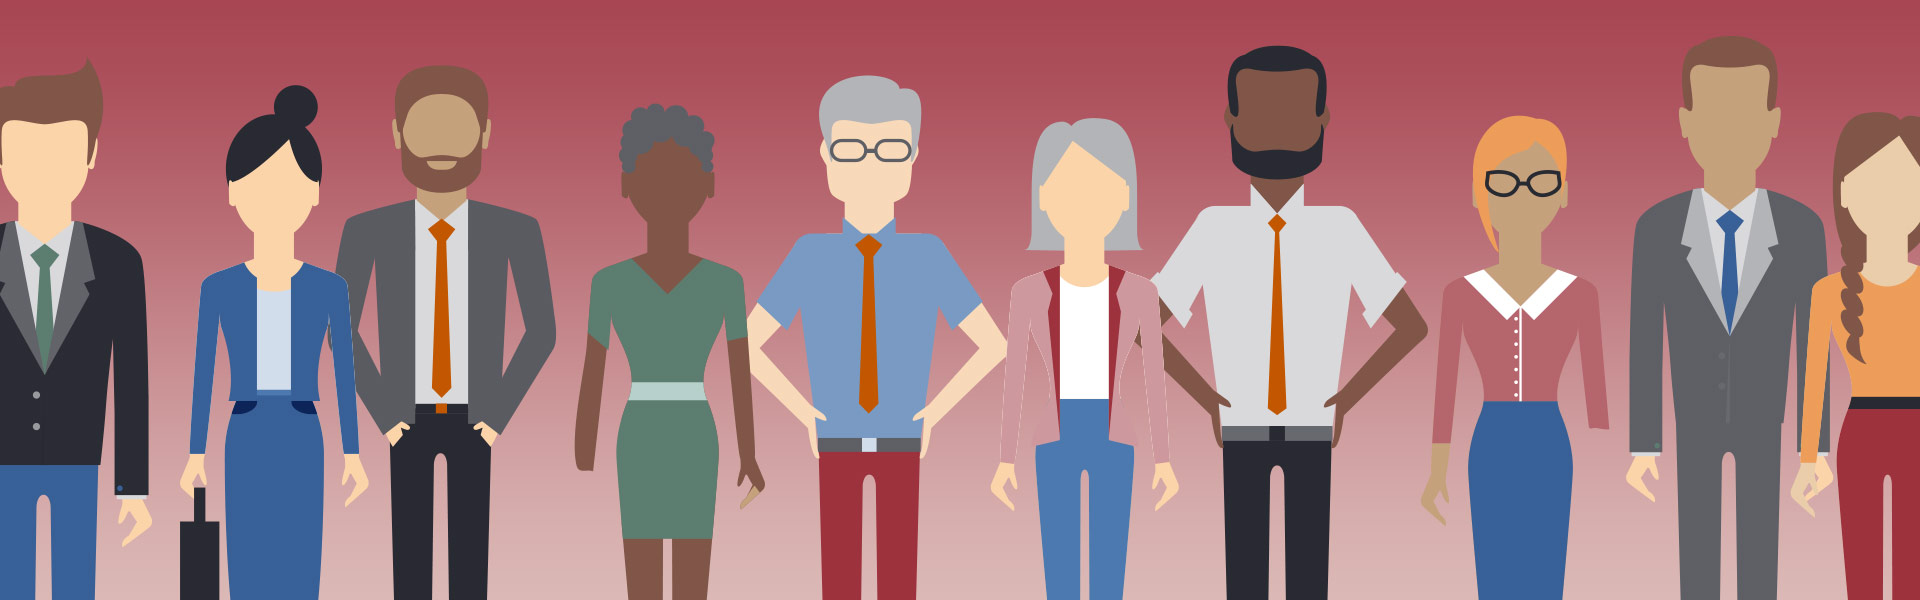 How to Become a More Diverse and Inclusive Business